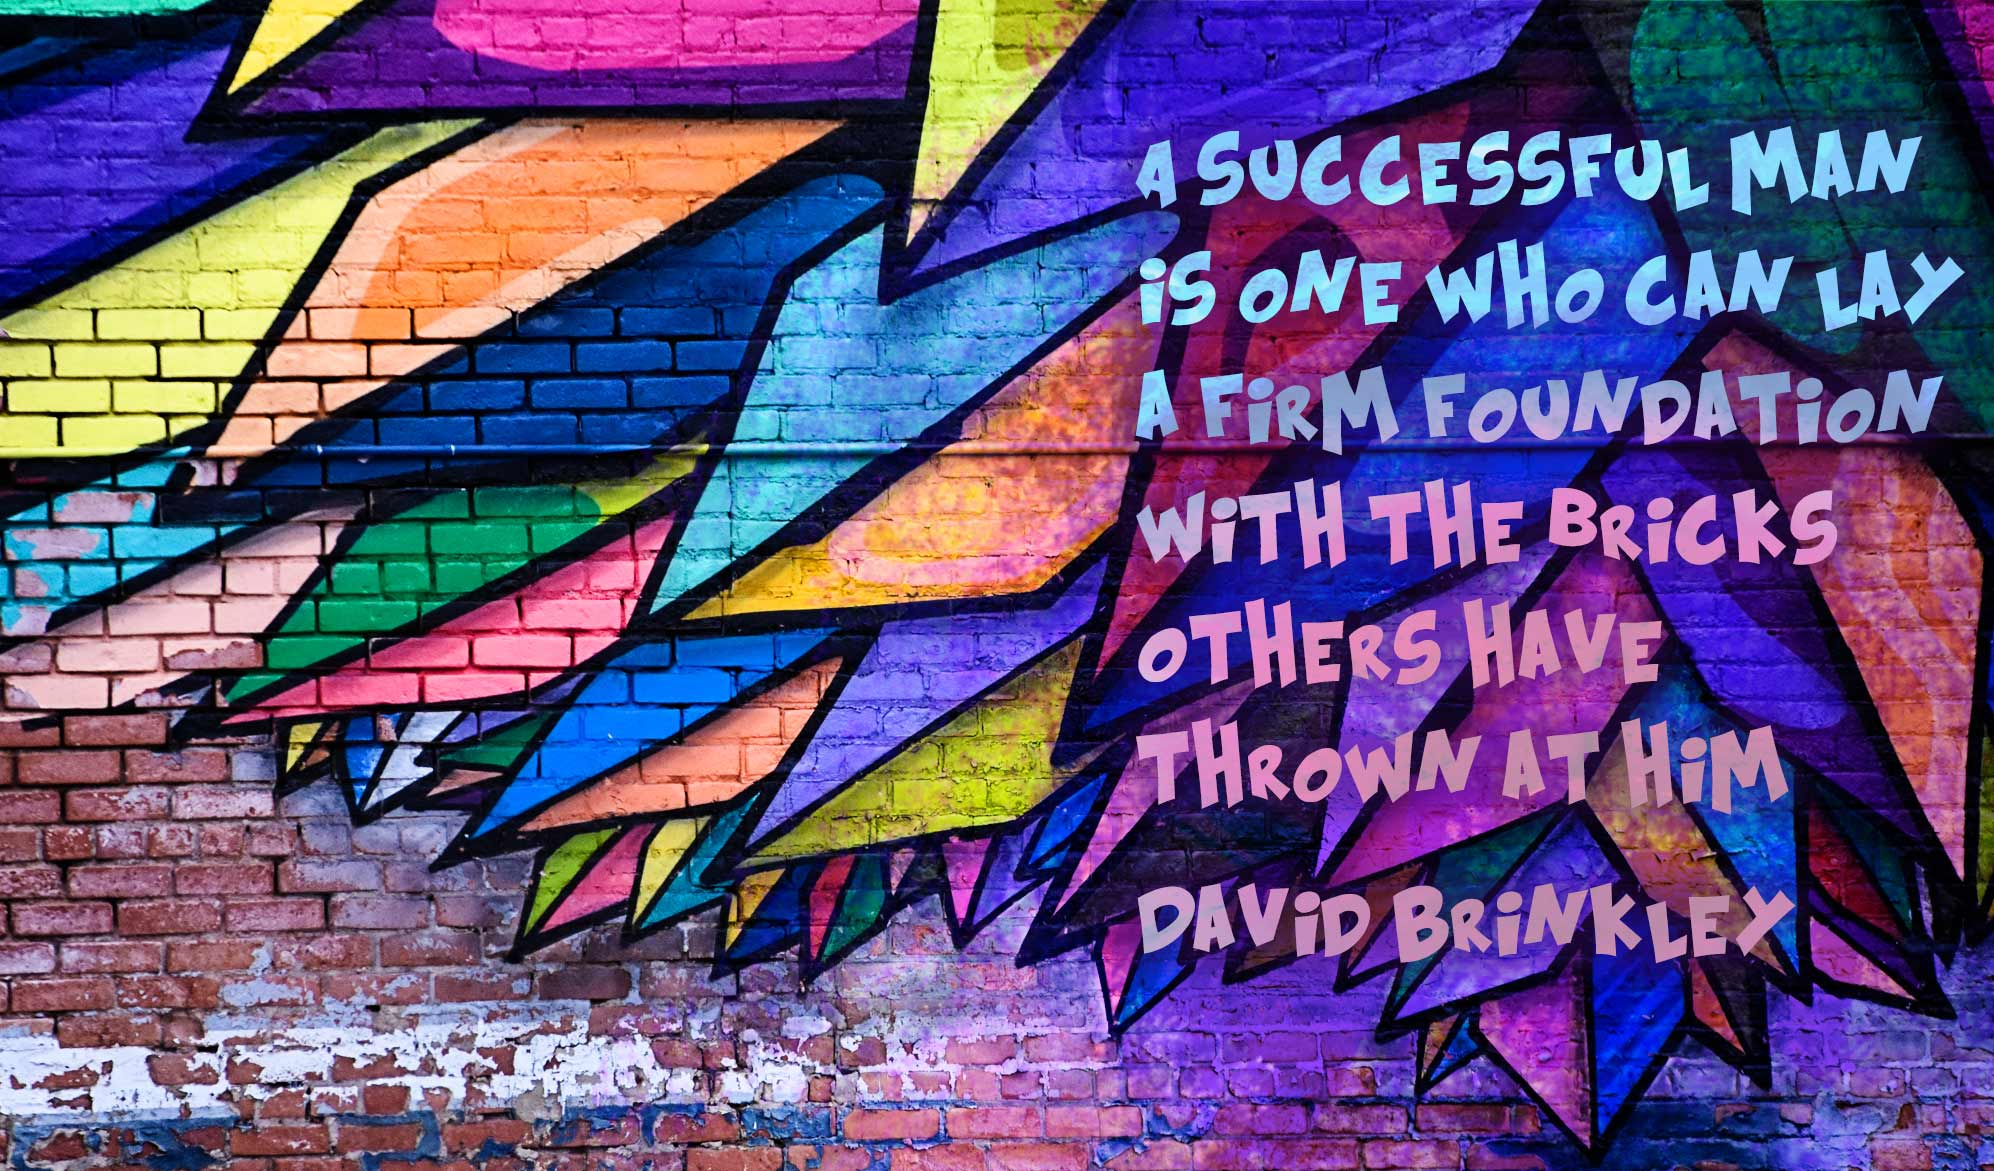 daily inspirational quote image: very colorful mural on a brick wall